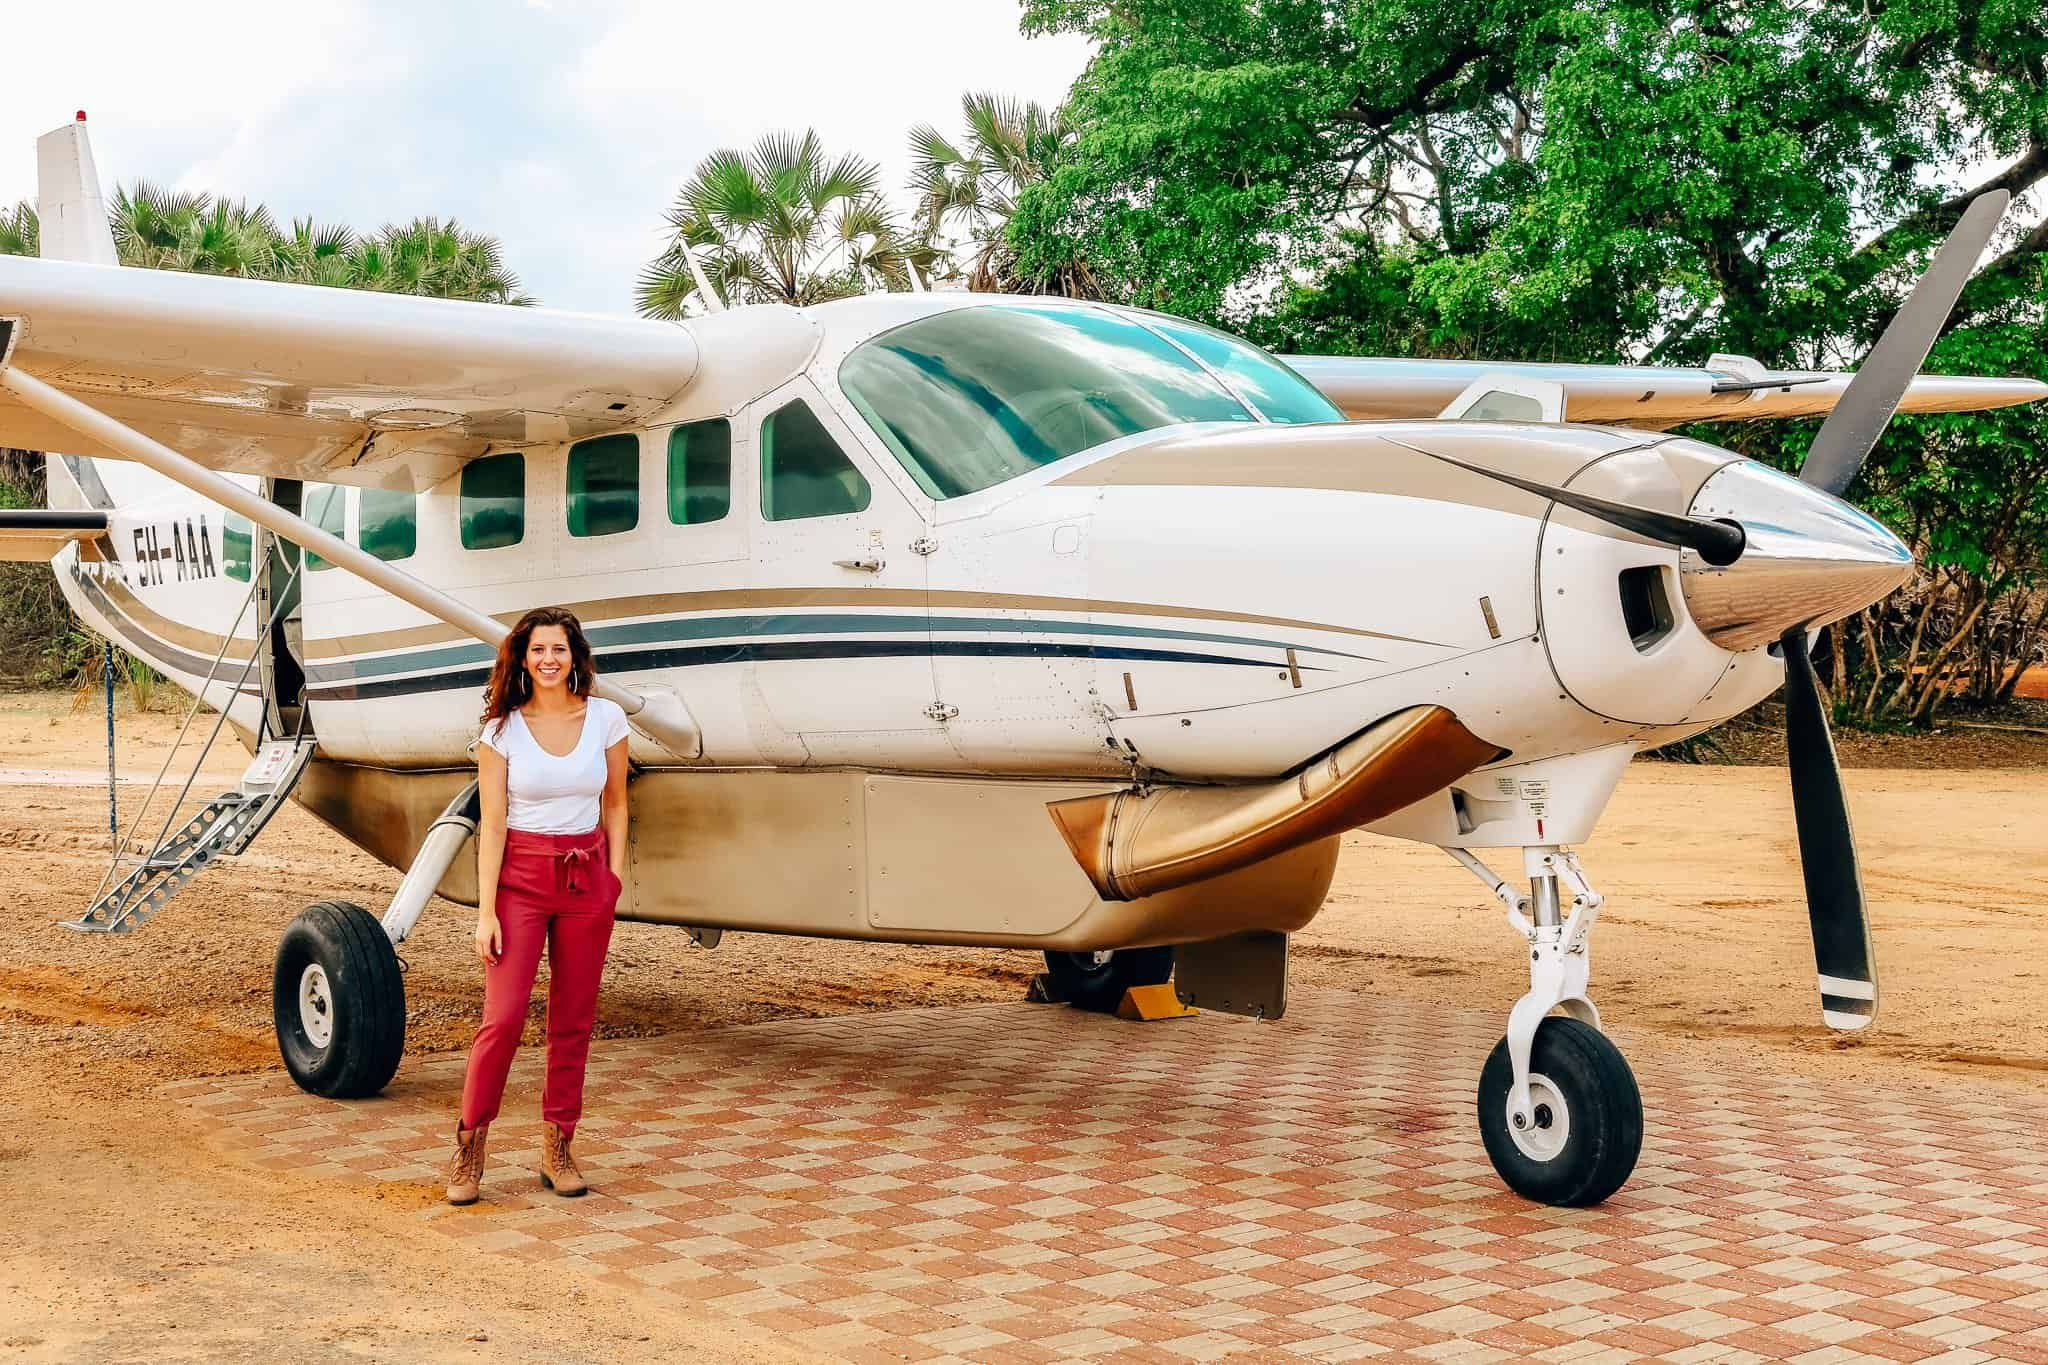 The Start of our First African Safari - Flying Auricair